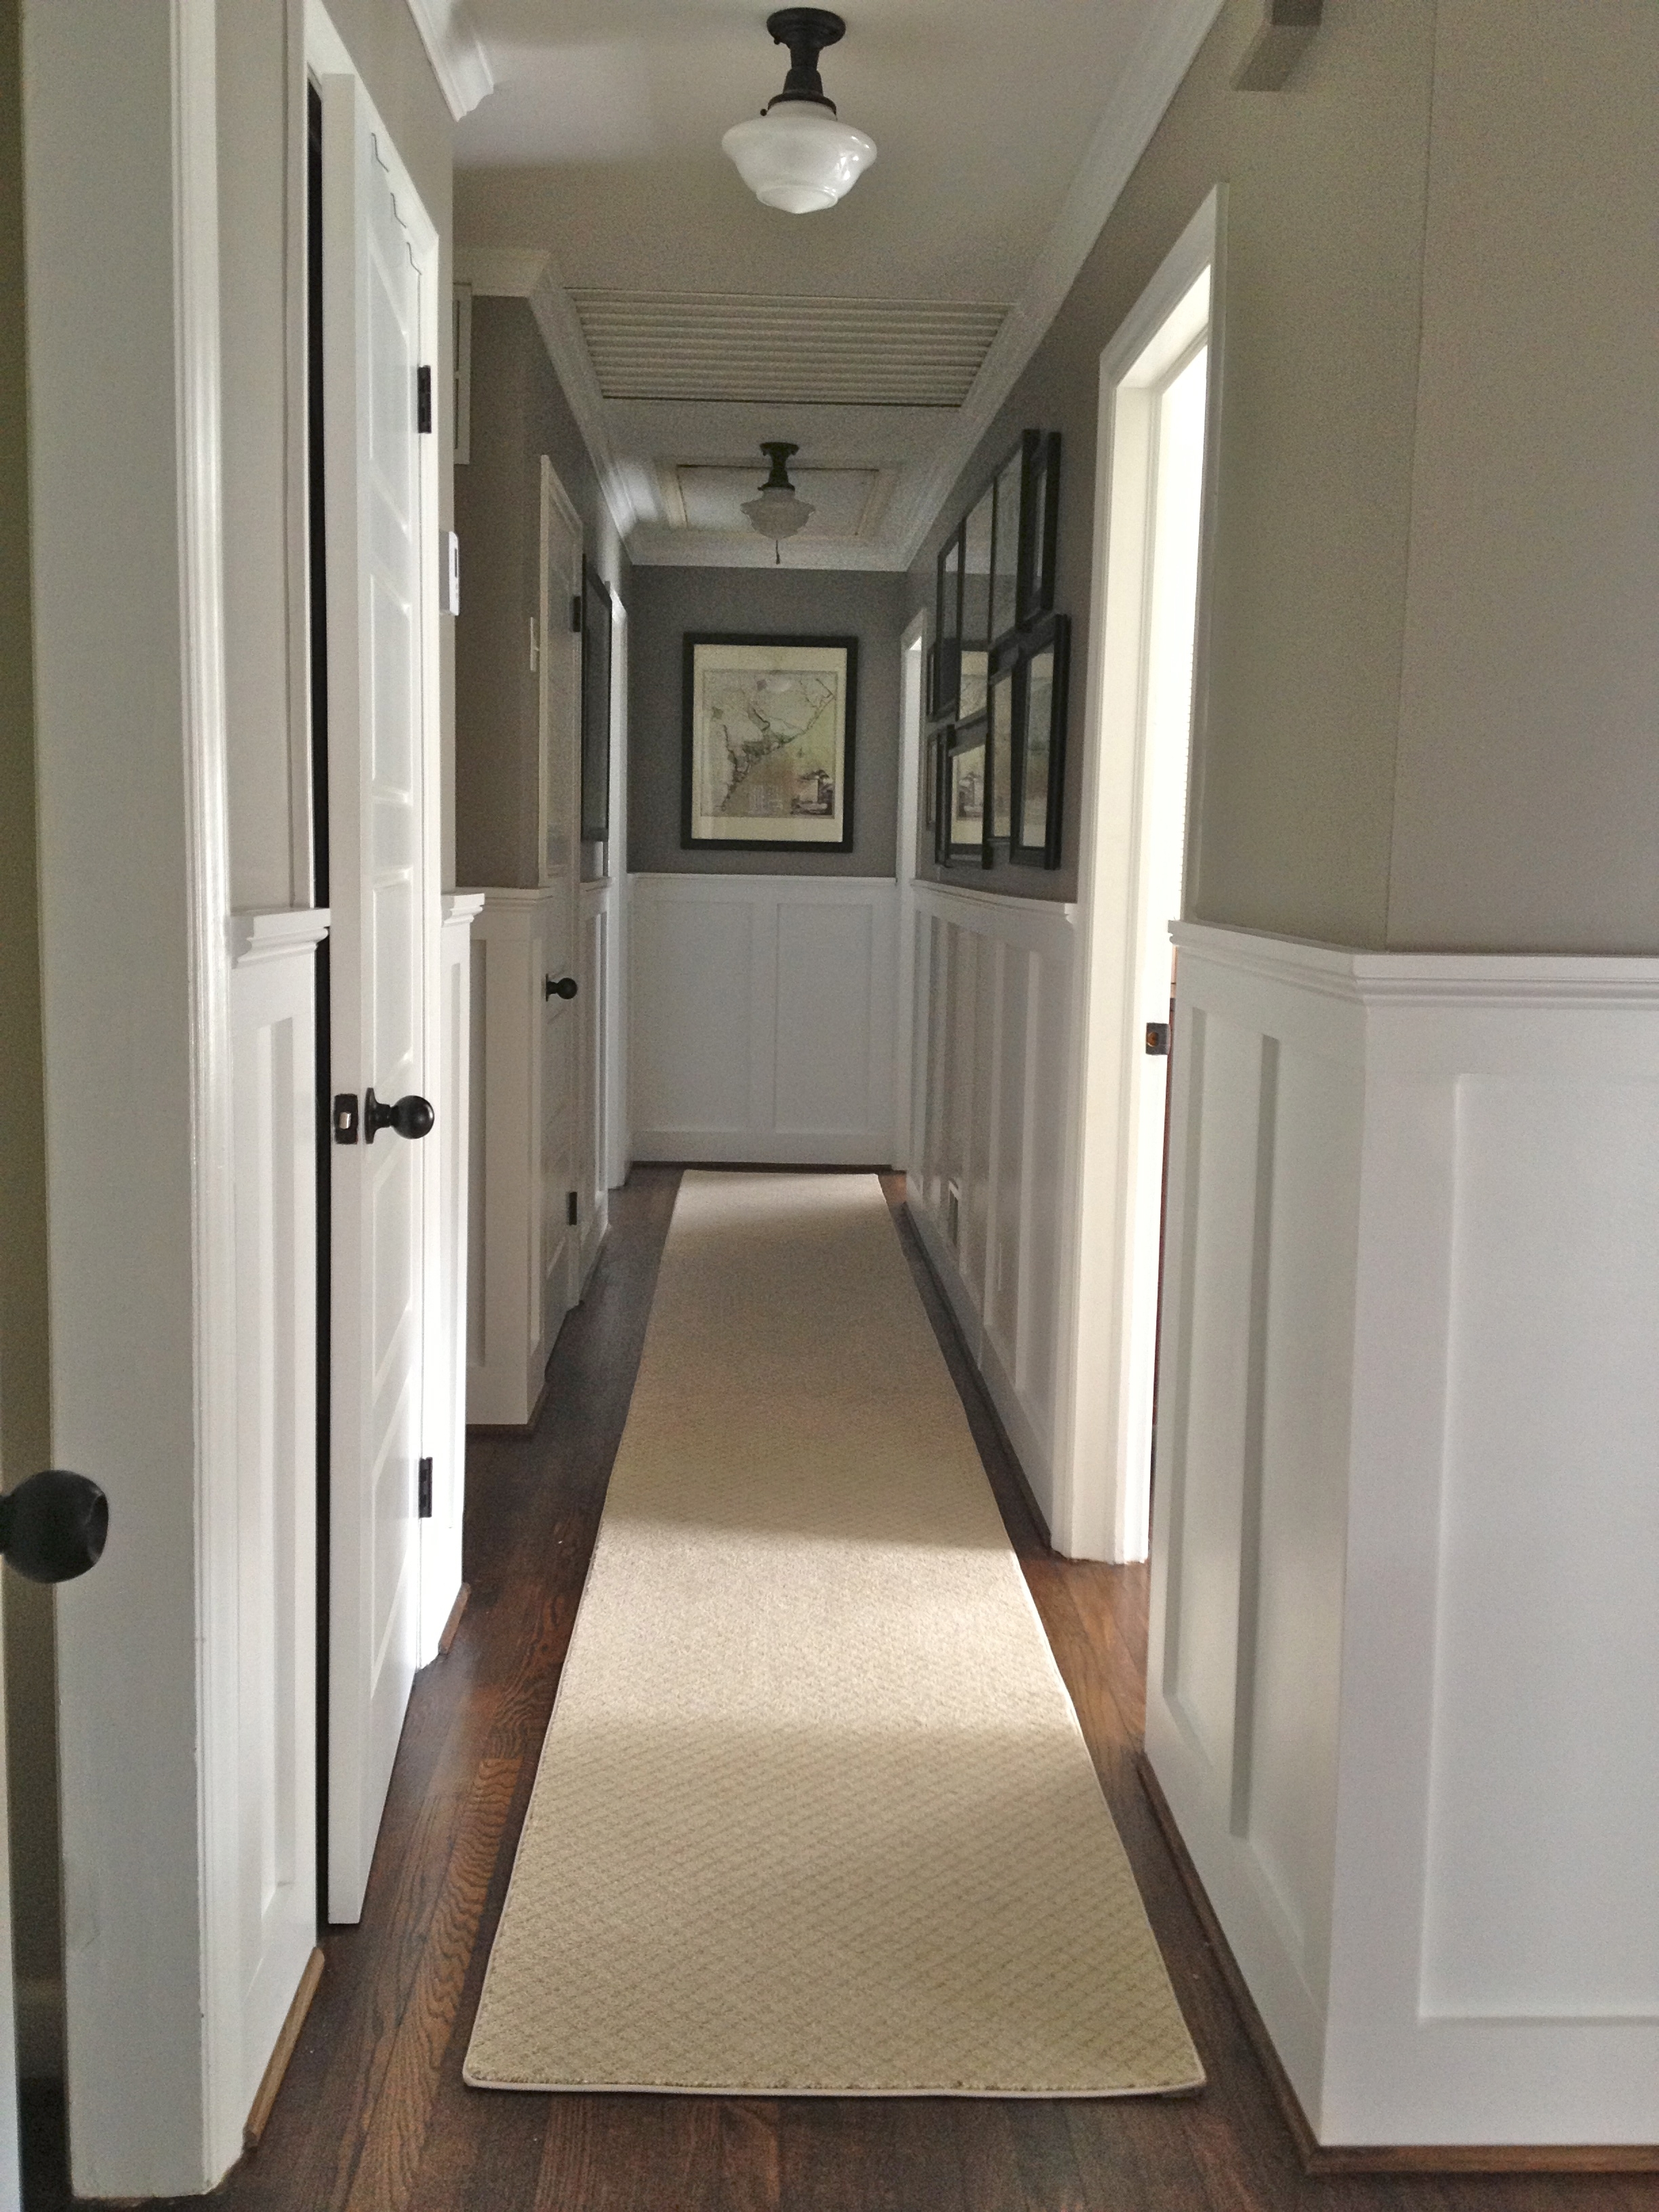 Popular Photo of Runner Rugs For Hallways